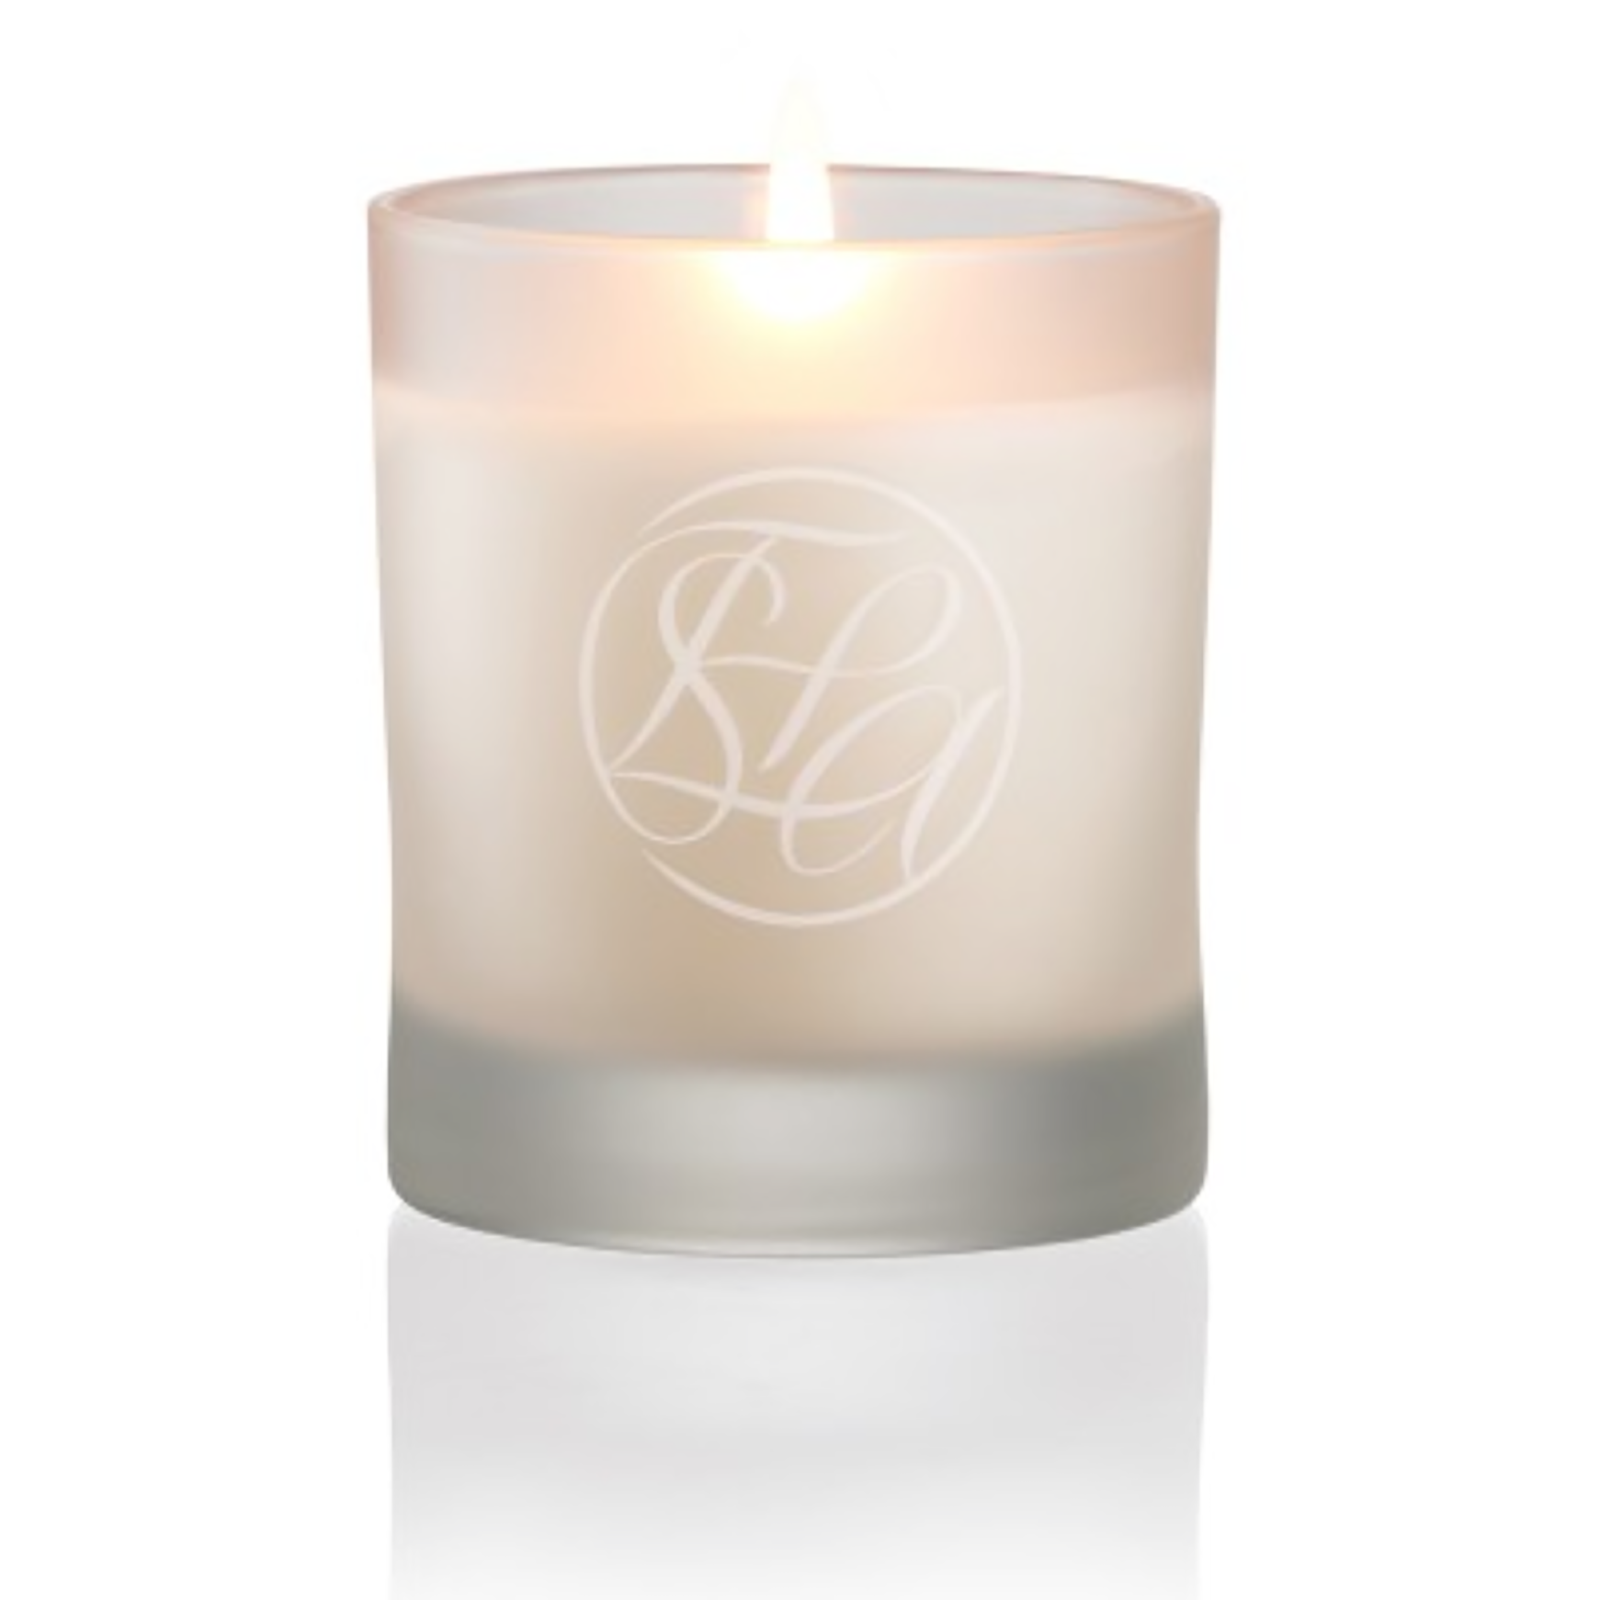 ESPA Soothing Candle (200g)